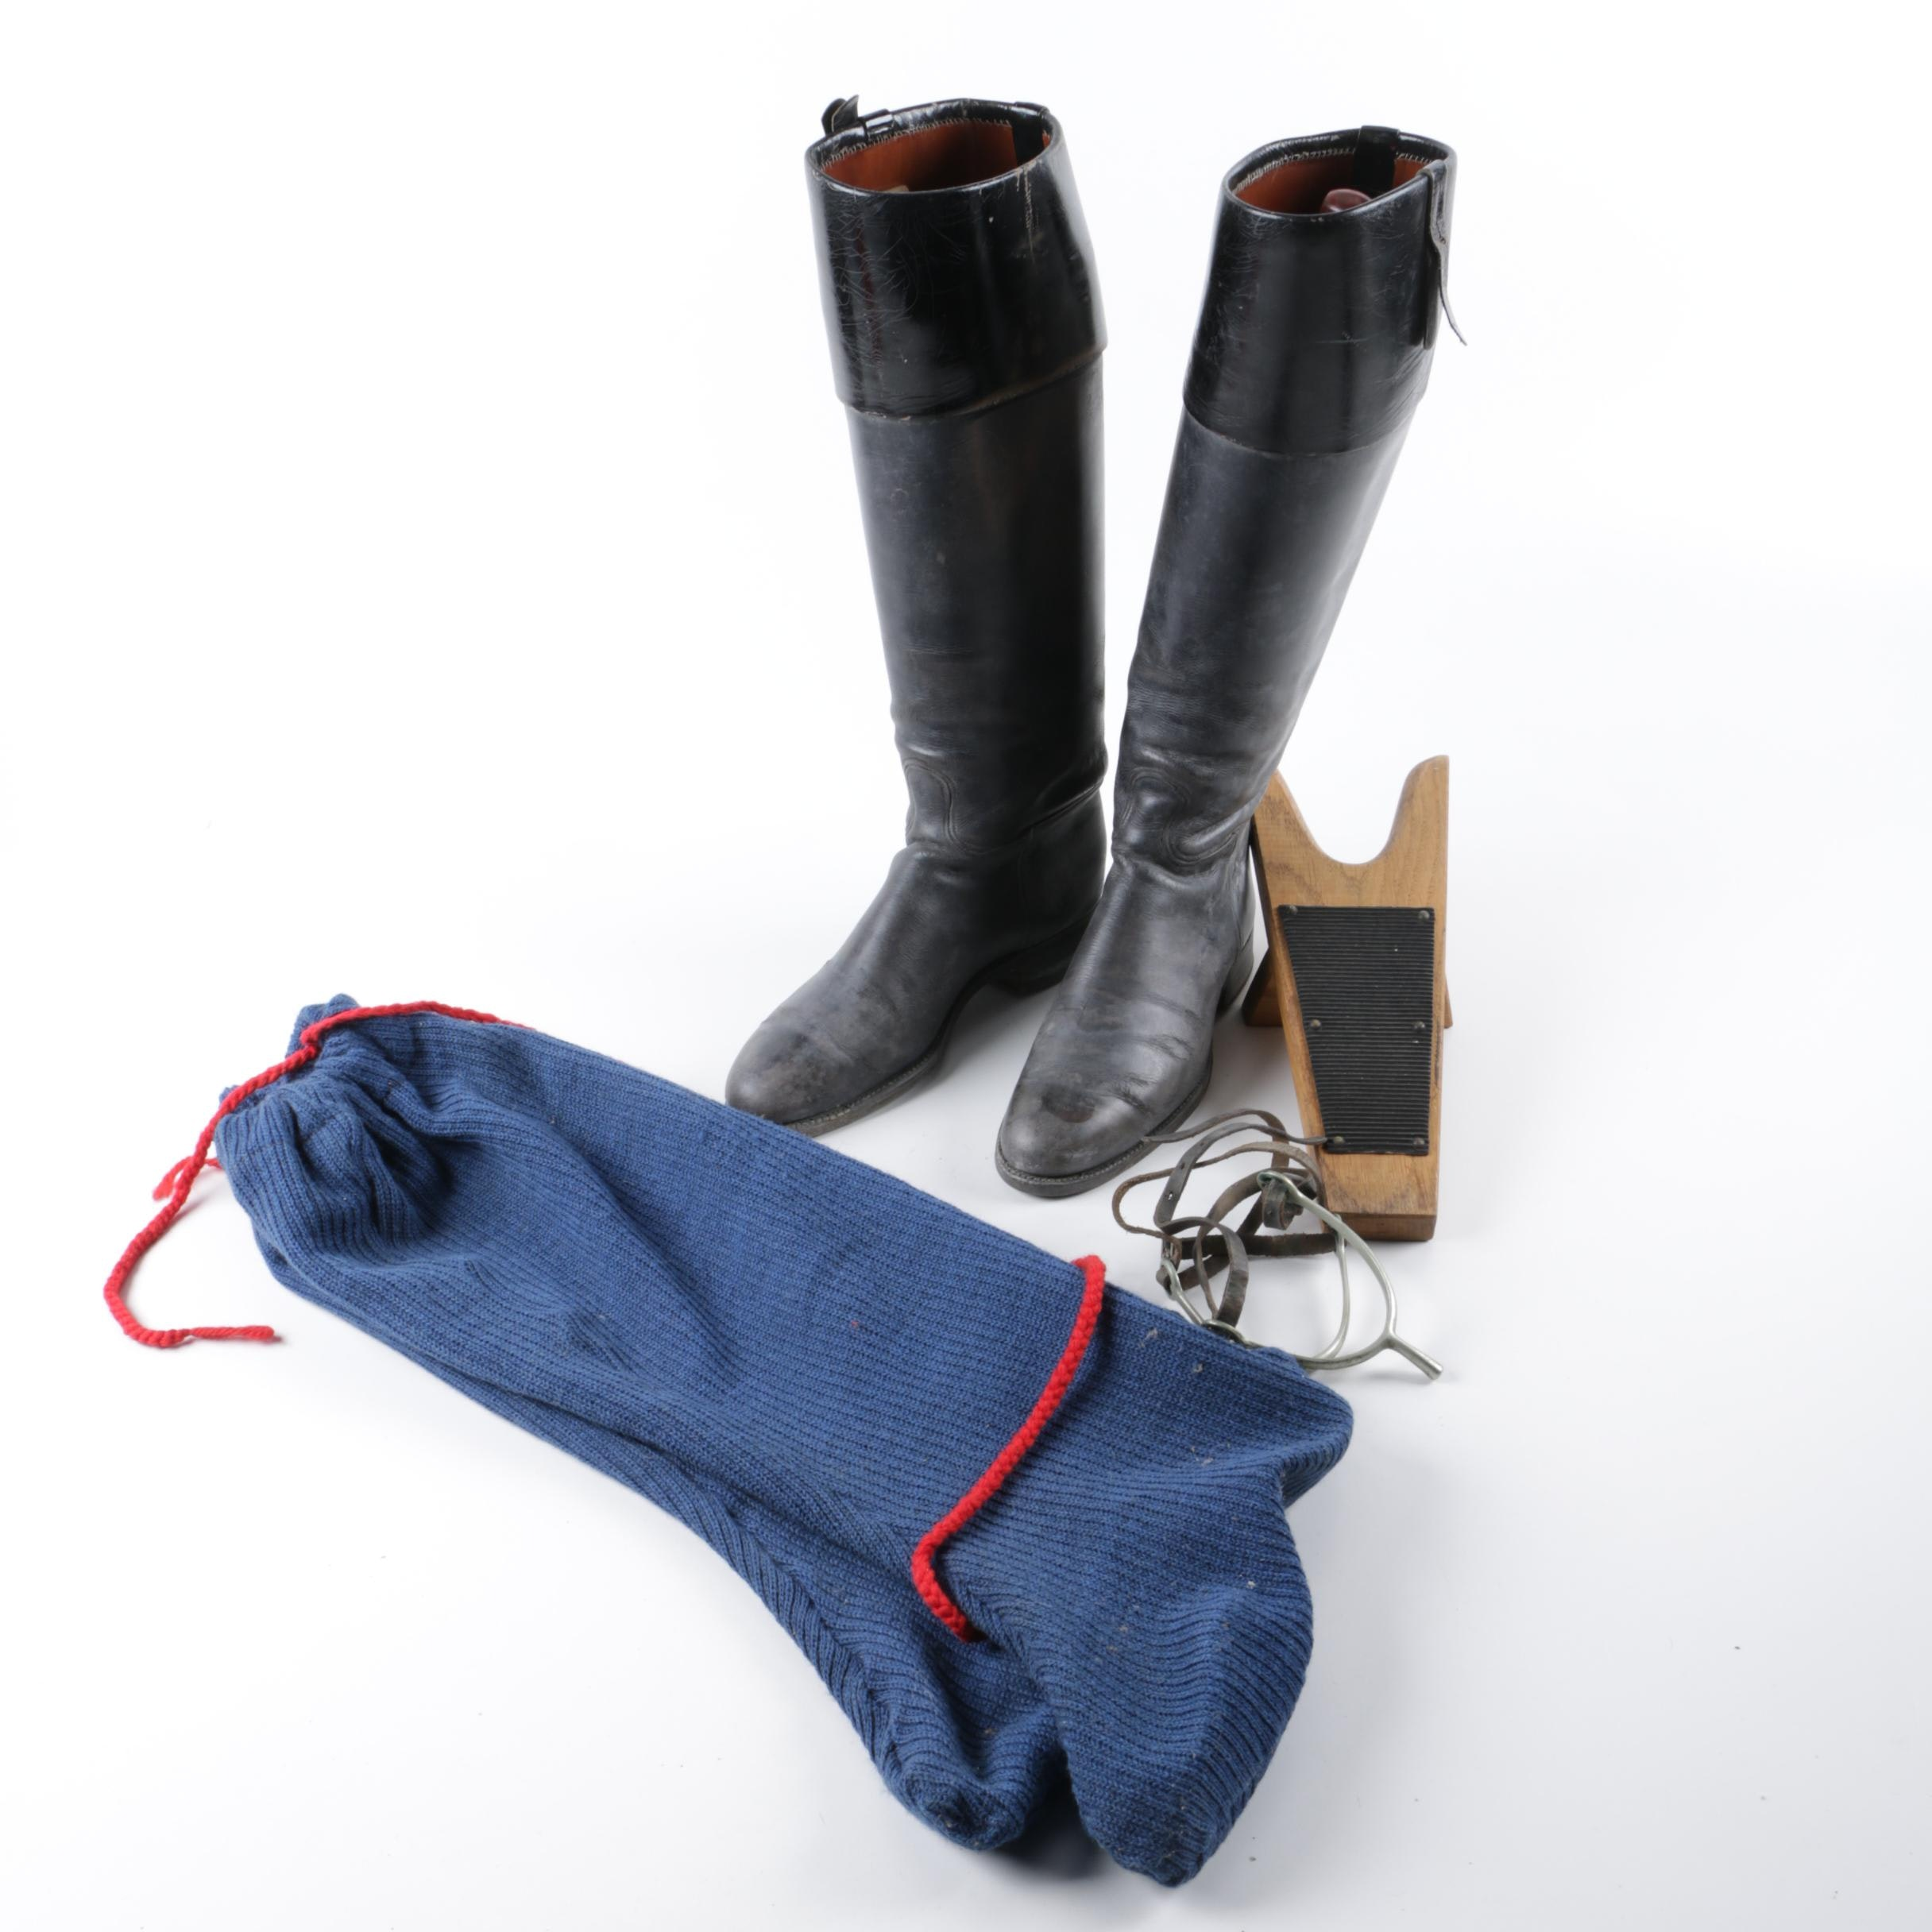 Women's Miller Craft Black Riding Boots with Dust Covers